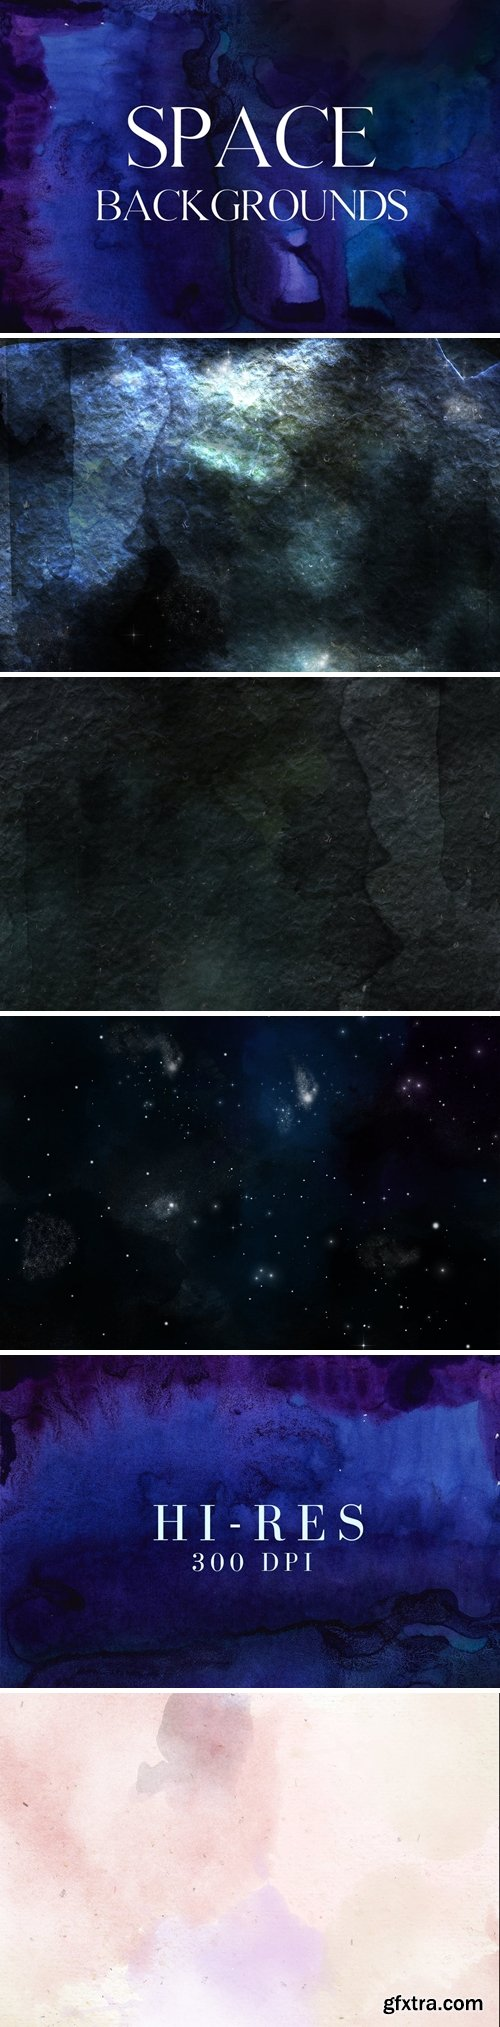 5 mystic space watercolor backgrounds